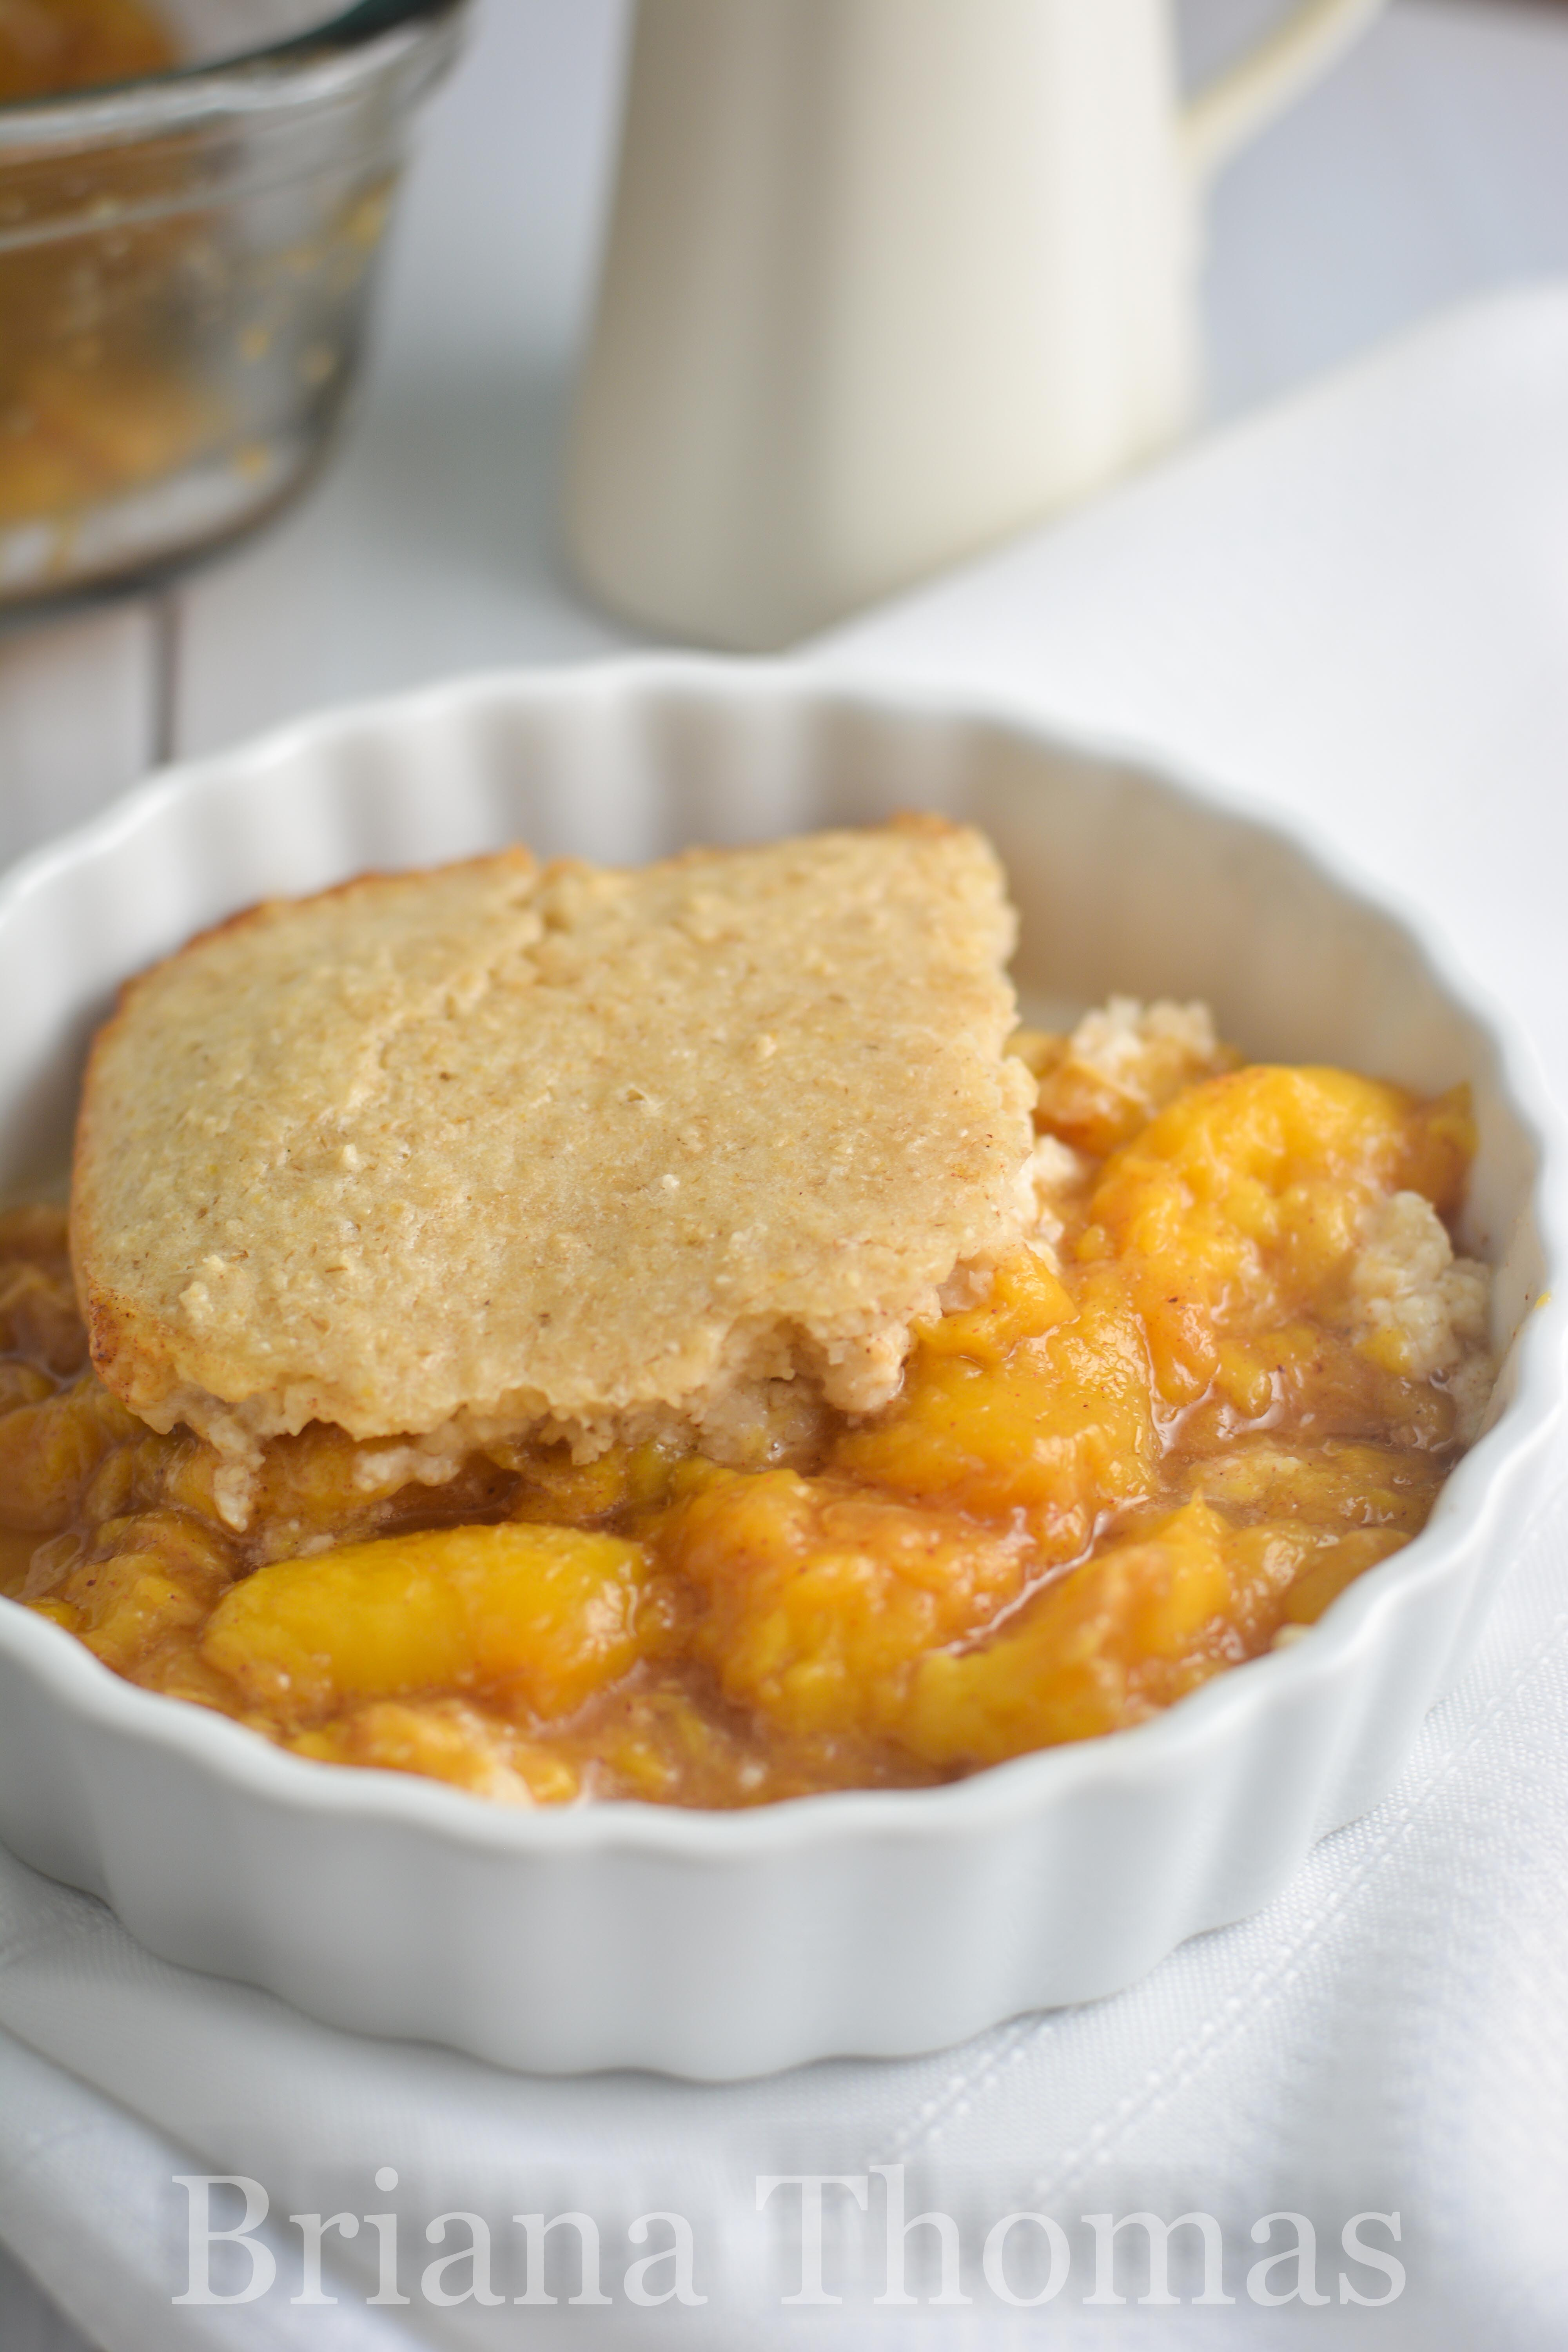 This peach cobbler with biscuit topping is a yummy THM:E dessert! No added sugar, low fat, gluten/nut free - and no special ingredients required!